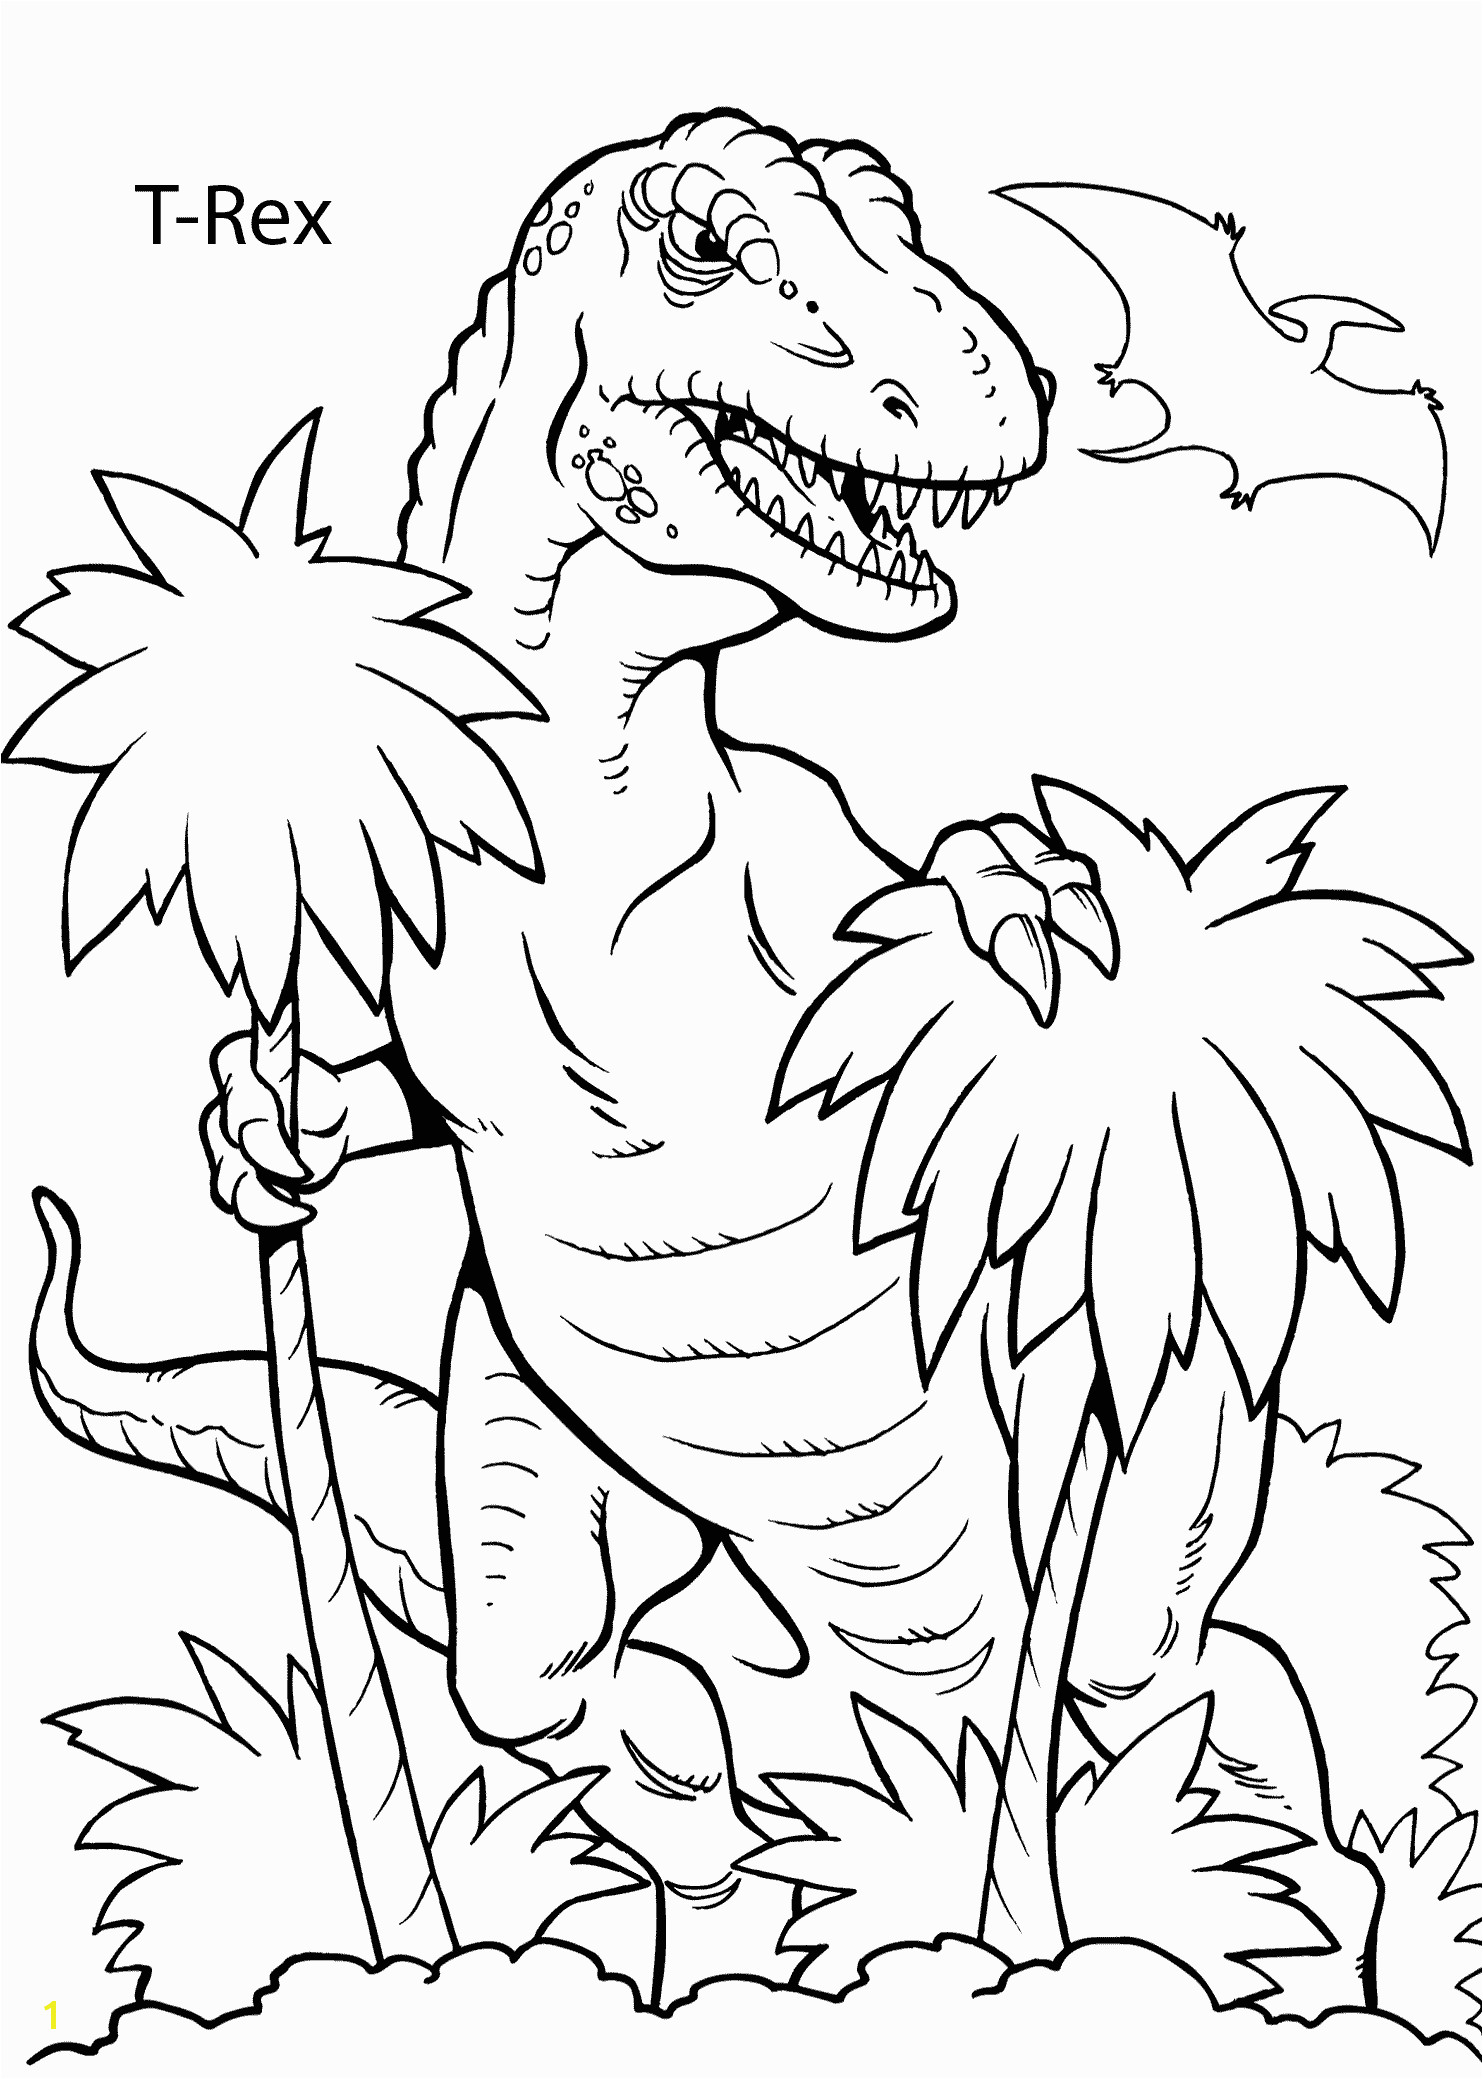 T Rex Dinosaur Coloring Pages T Rex Dinosaur Coloring Pages for Kids Printable Free